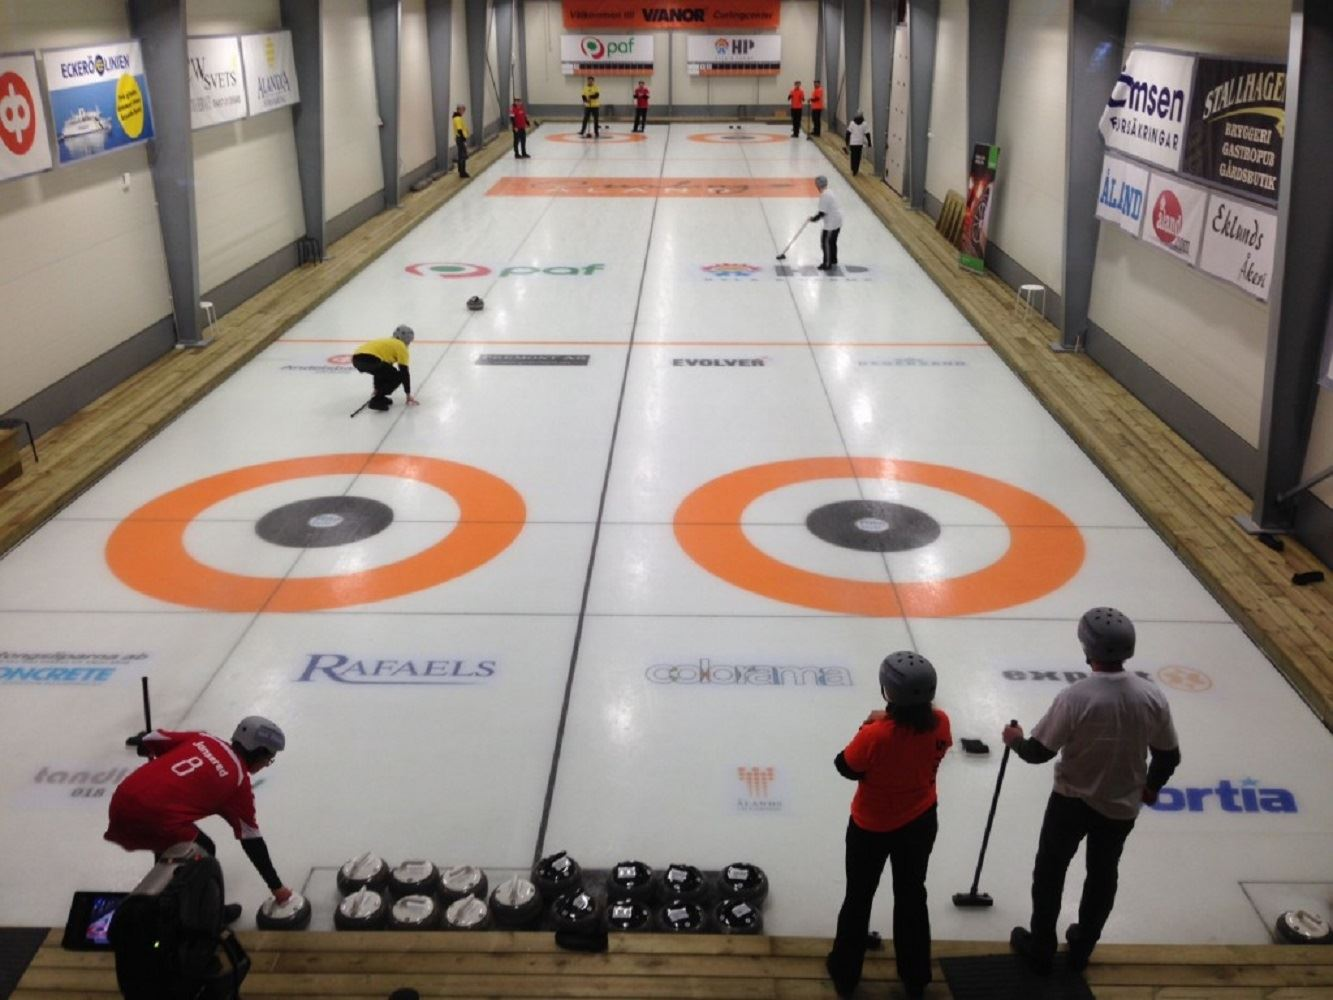 Vianor Curlingcenter